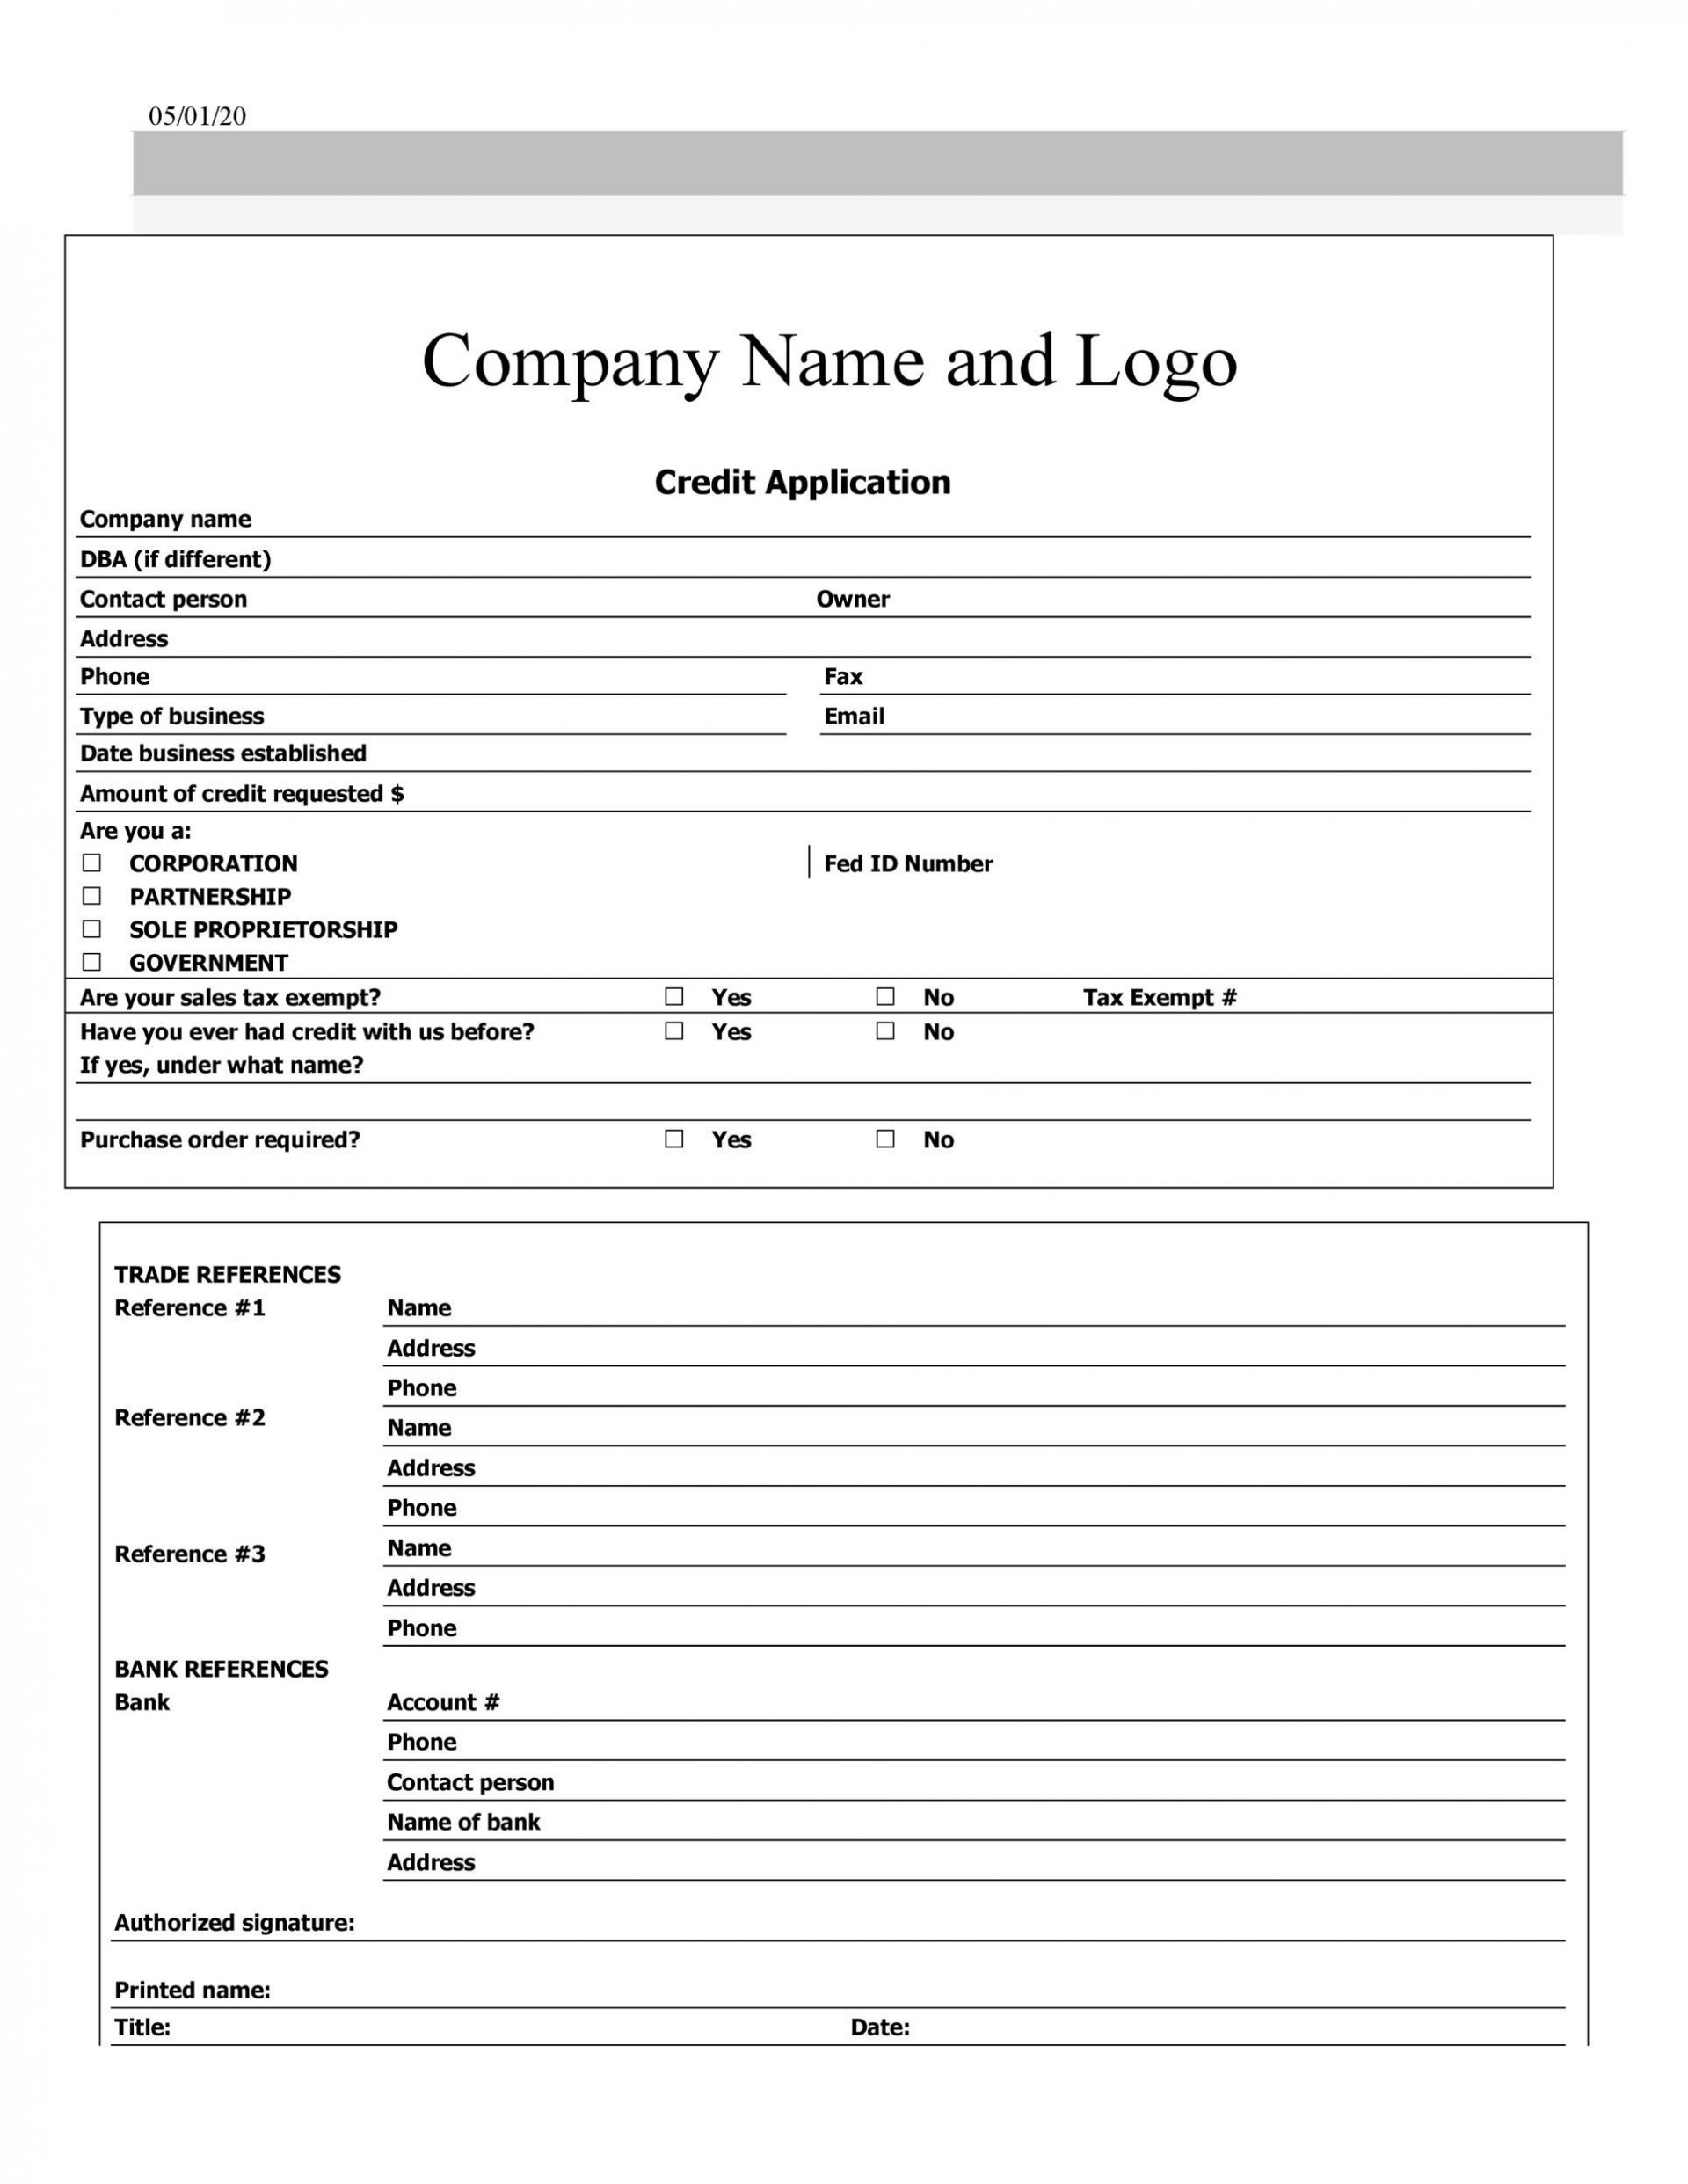 007 Excellent New Customer Account Application Form Template Image  Busines Uk Opening1920